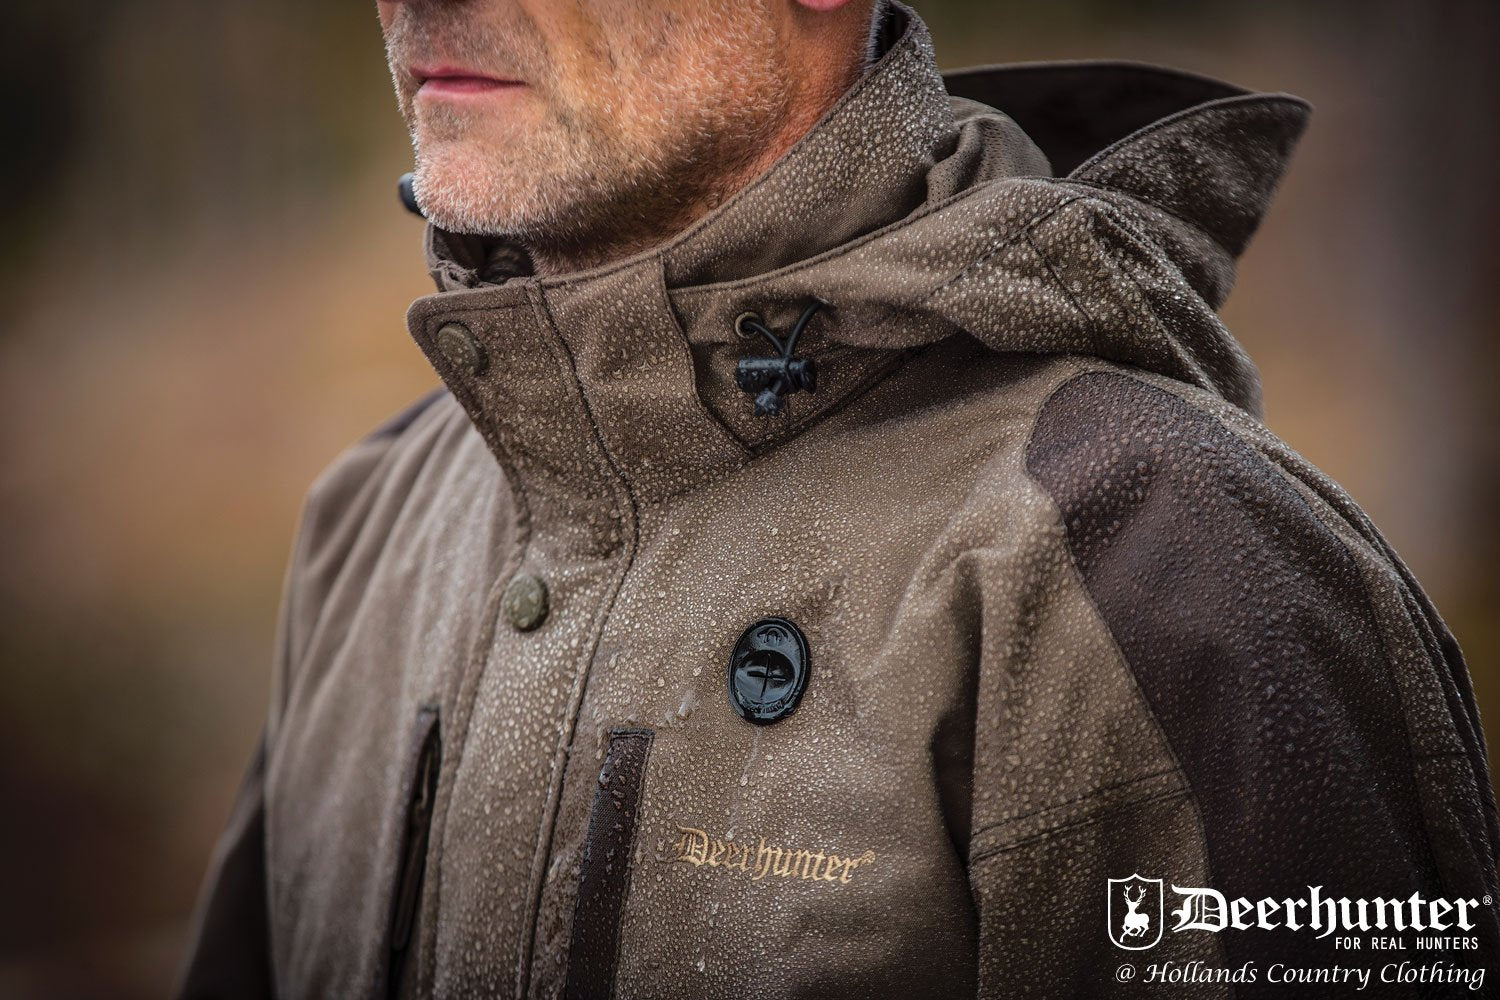 Water beading on outer Upland Waterproof Jacket by Deerhunter